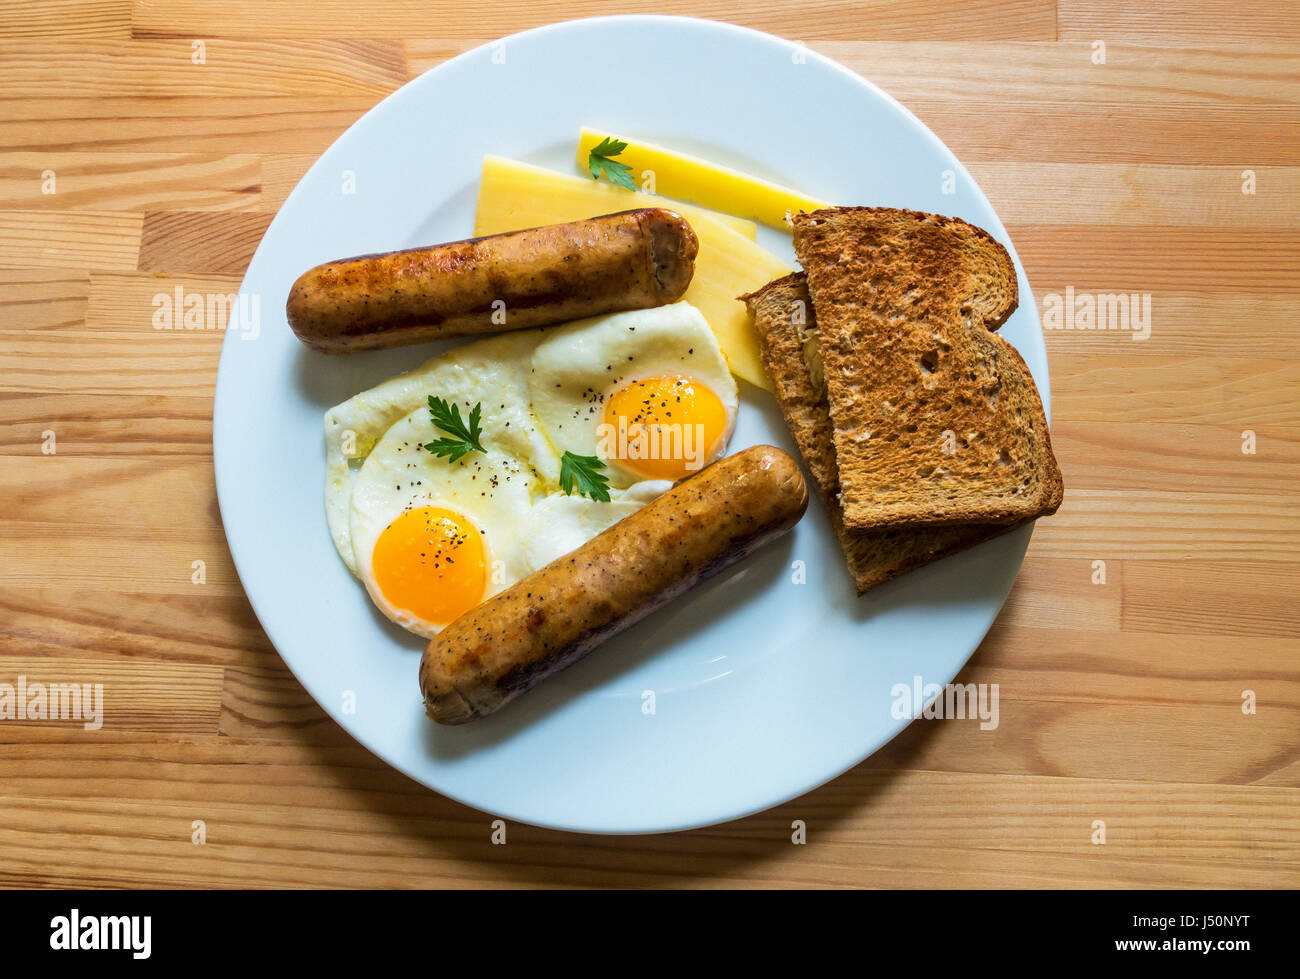 Two fried eggs sunny side up with sausage and cheddar cheese and whole wheat toast - Stock Image